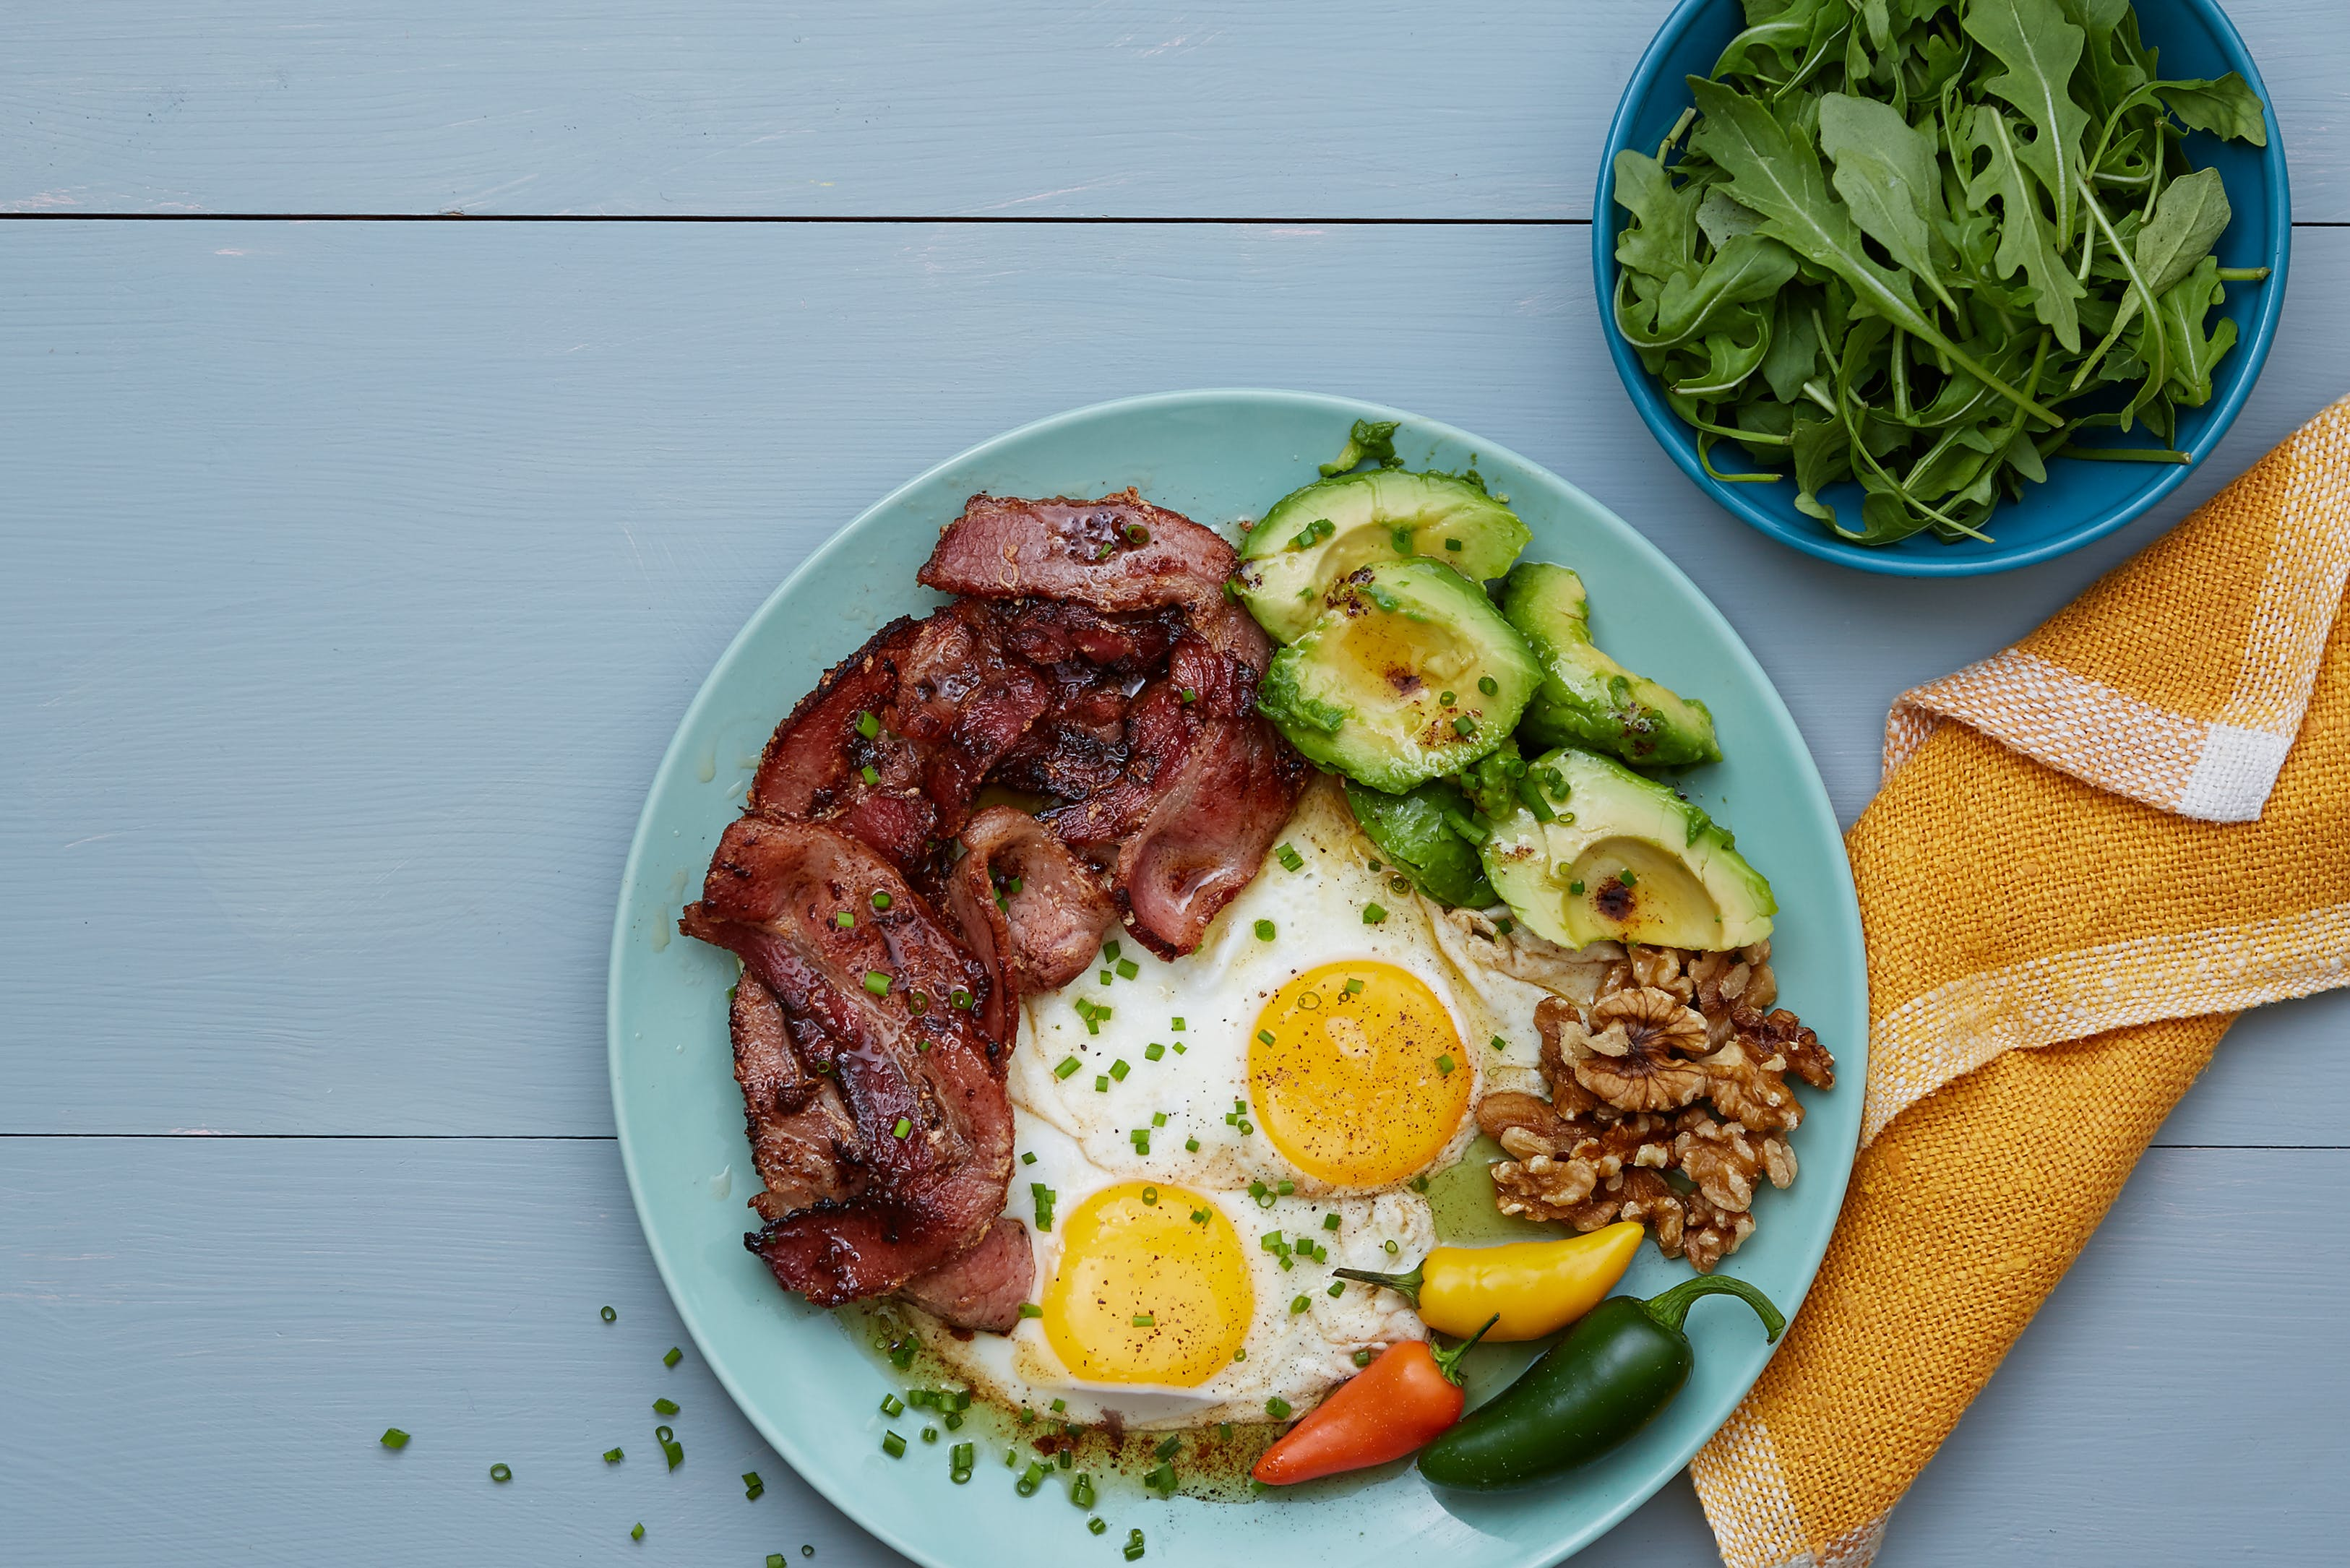 Keto bacon and eggs plate